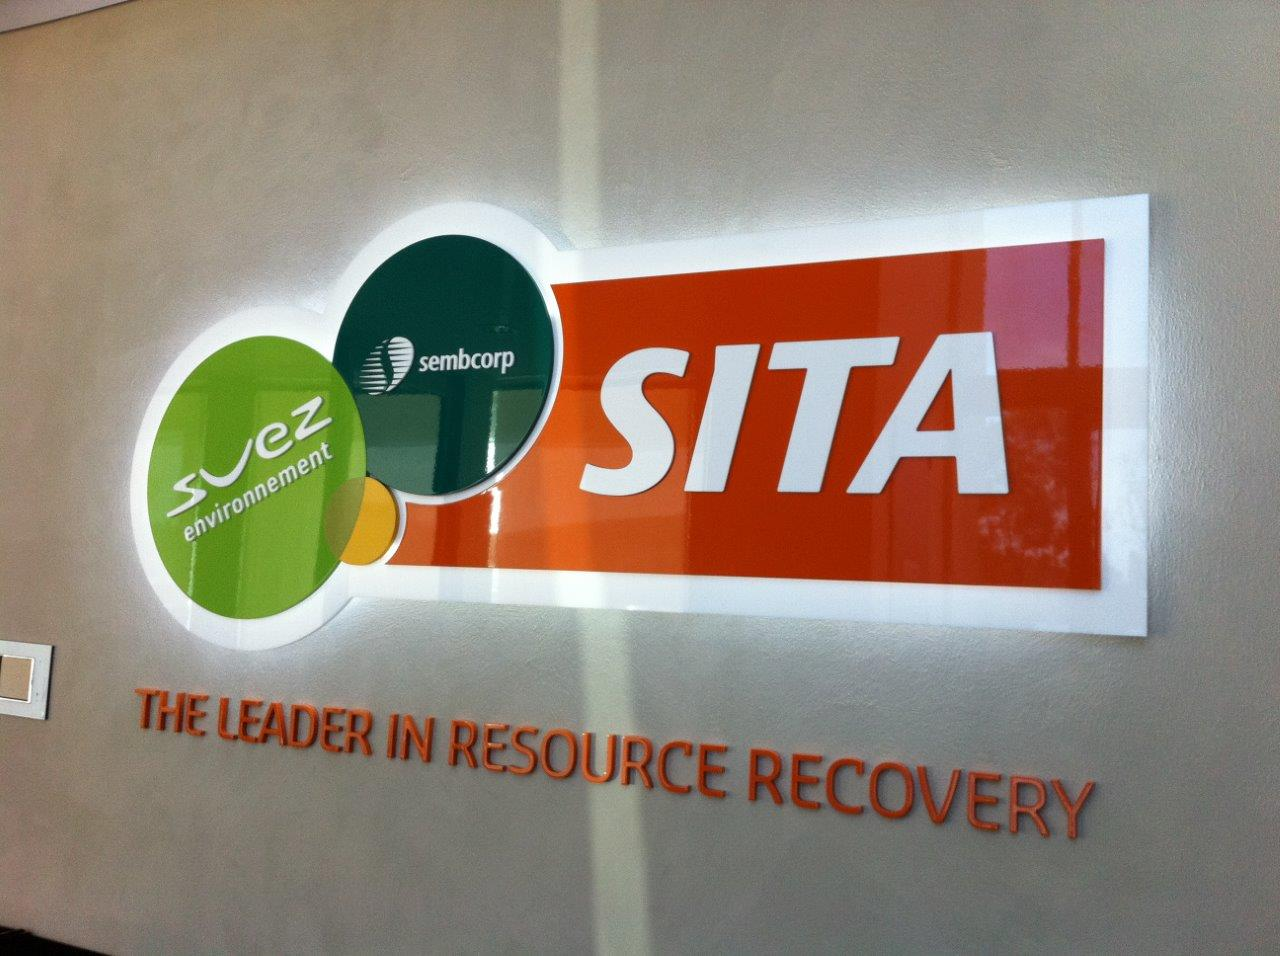 SITA LED illuminated sign